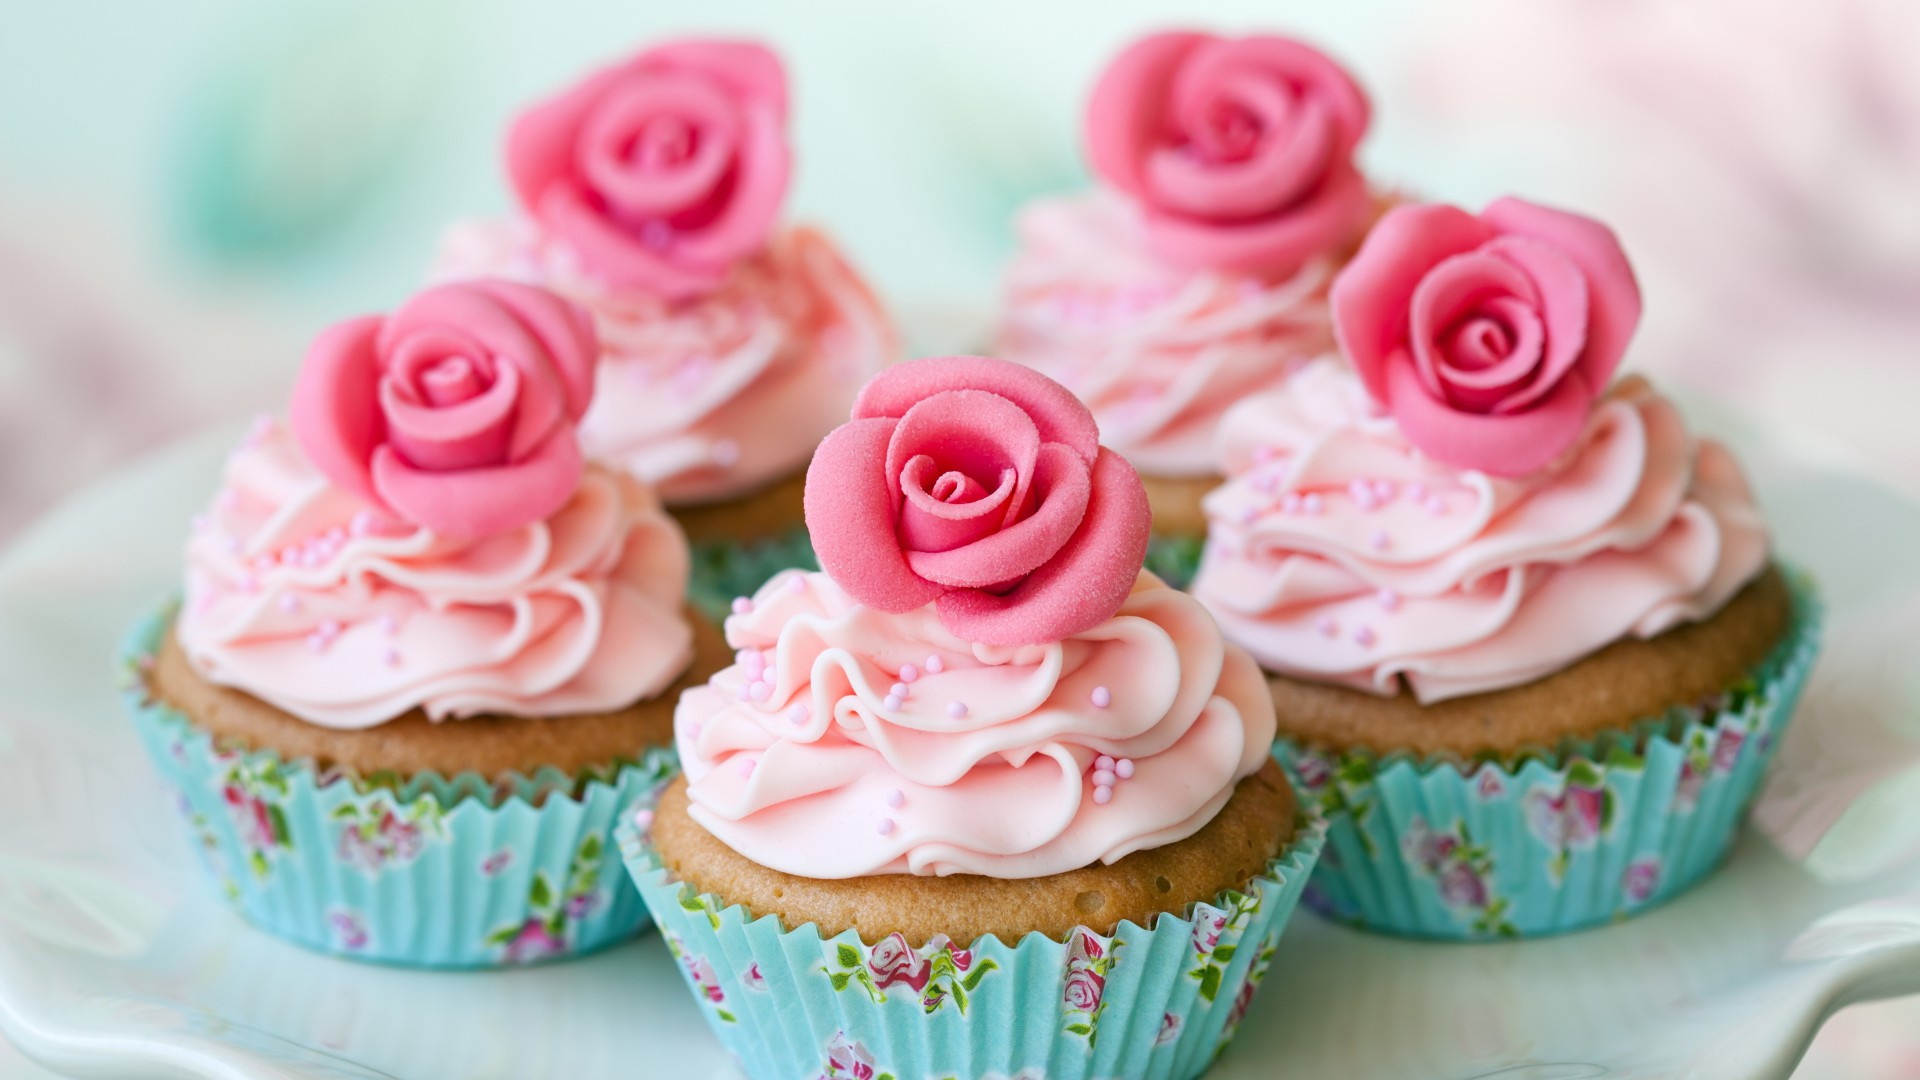 Muffins, flowers, pink, cupcake